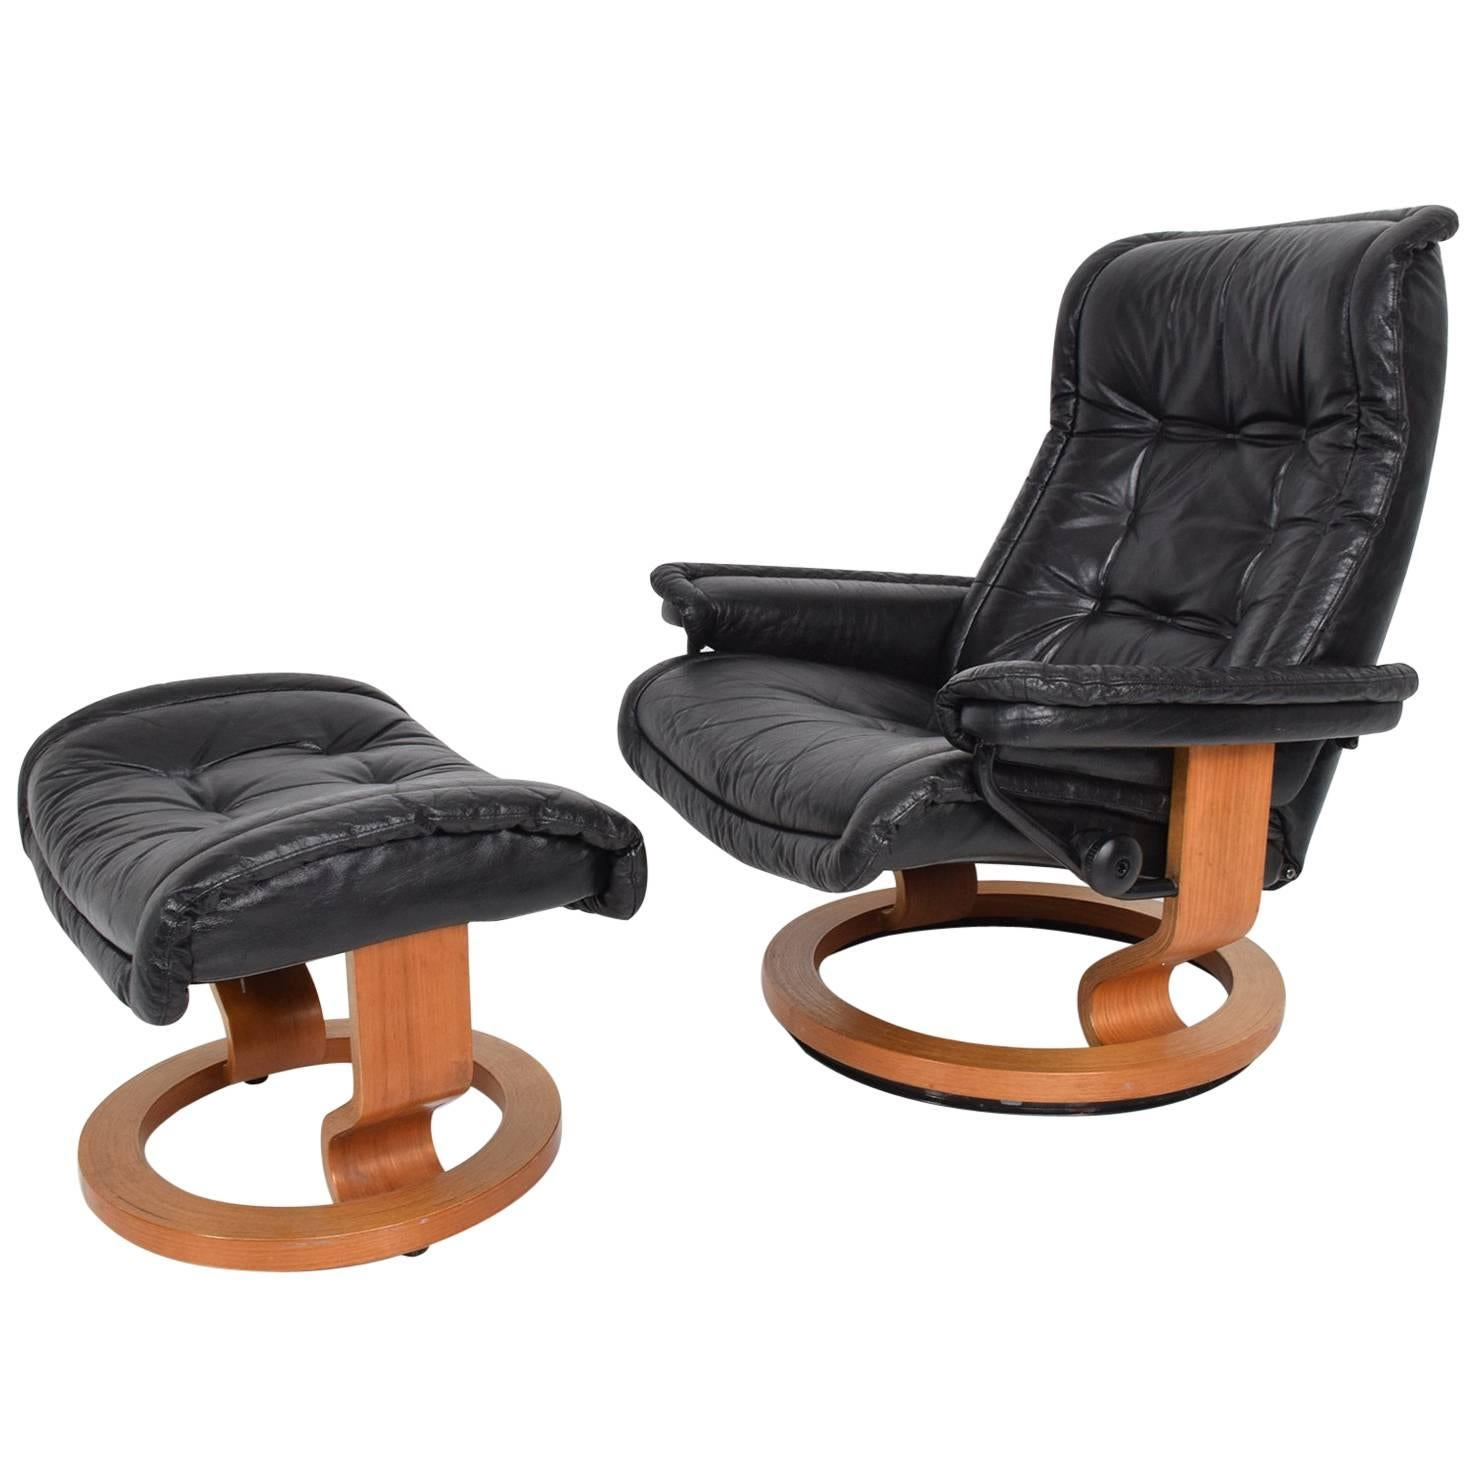 Delicieux Vintage Scandinavian Modern Ekornes Stressless Recliner Chair And Ottoman  For Sale